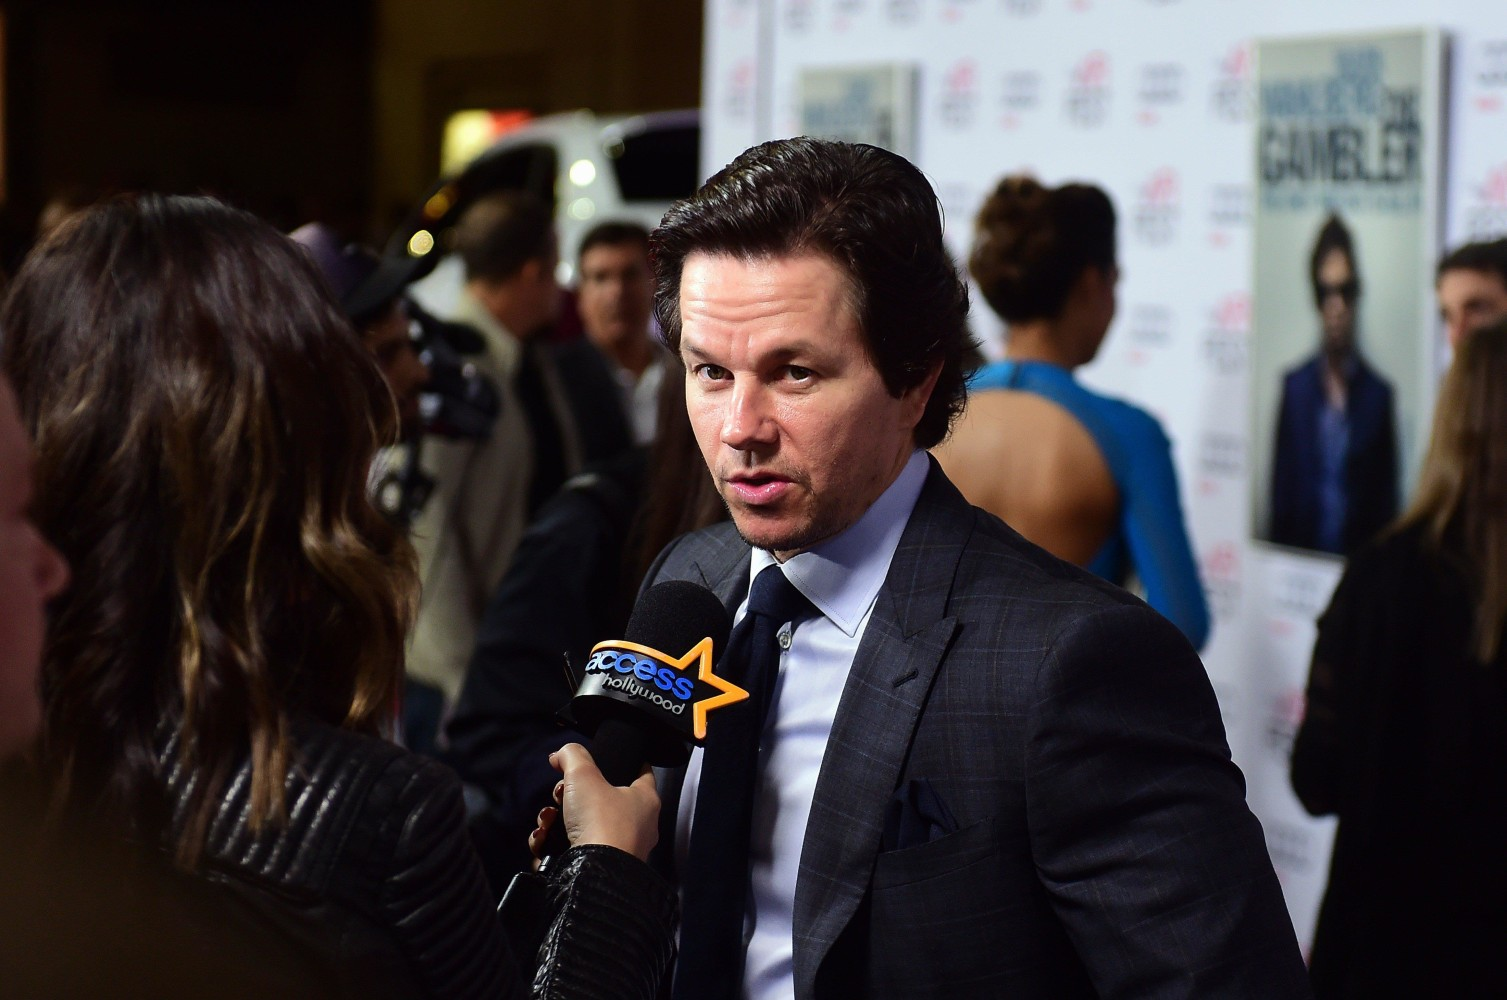 Should Mark Wahlberg Be Pardoned for 1988 Assault? - NBC News Mark Wahlberg Racist